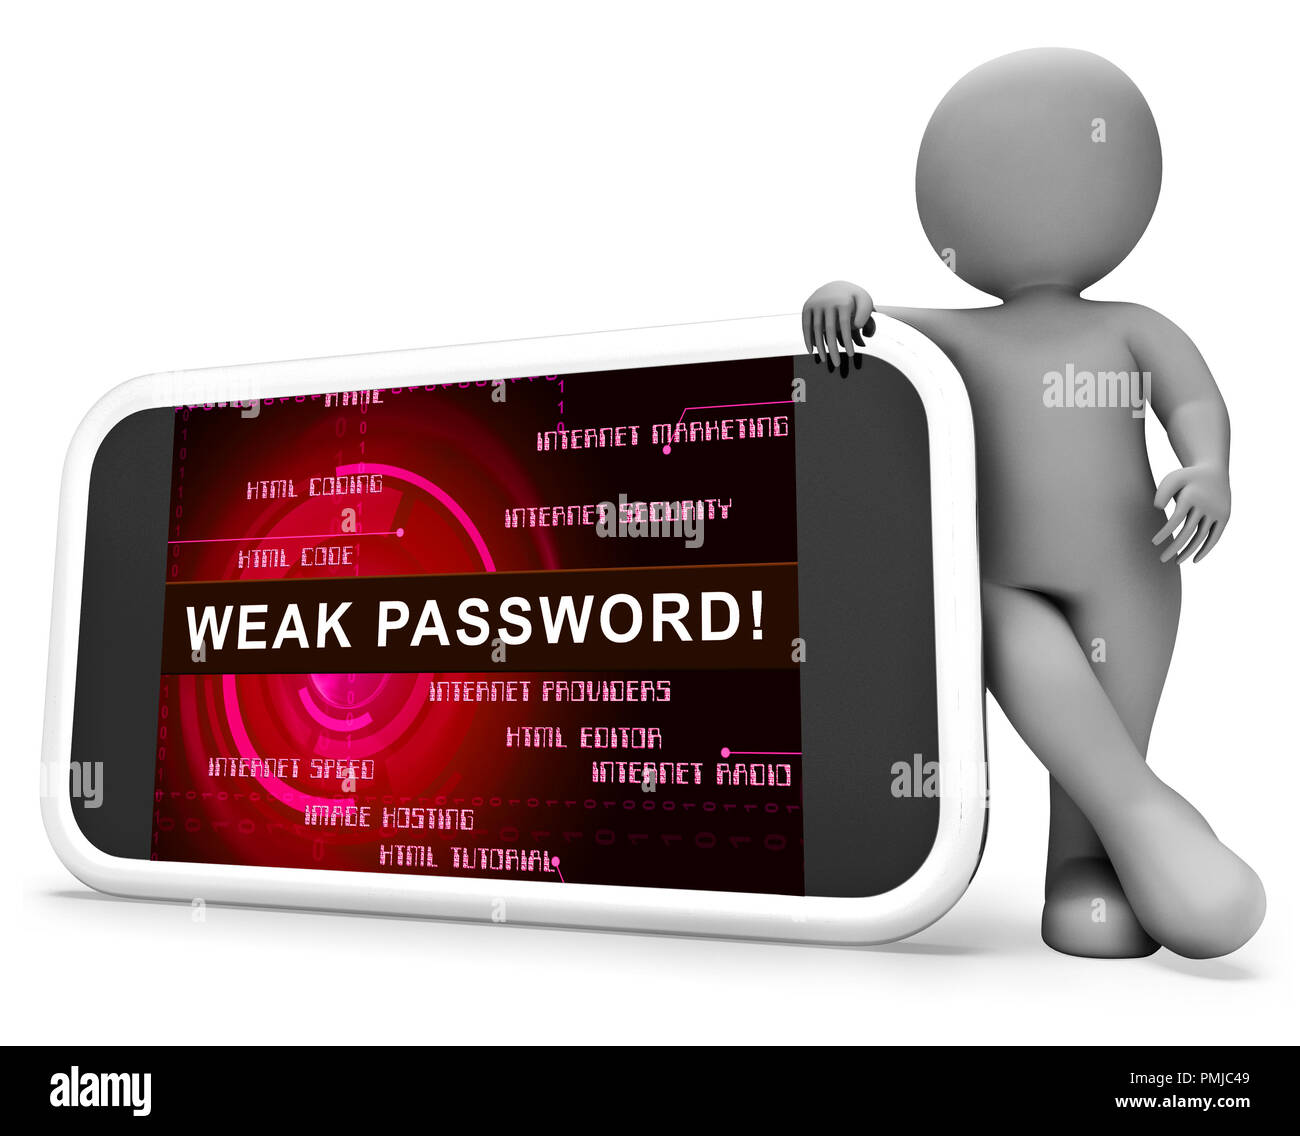 Password Weak Hacker Intrusion Threat 3d Rendering Shows Cybercrime Through Username Vulnerability And Compromised Computer - Stock Image